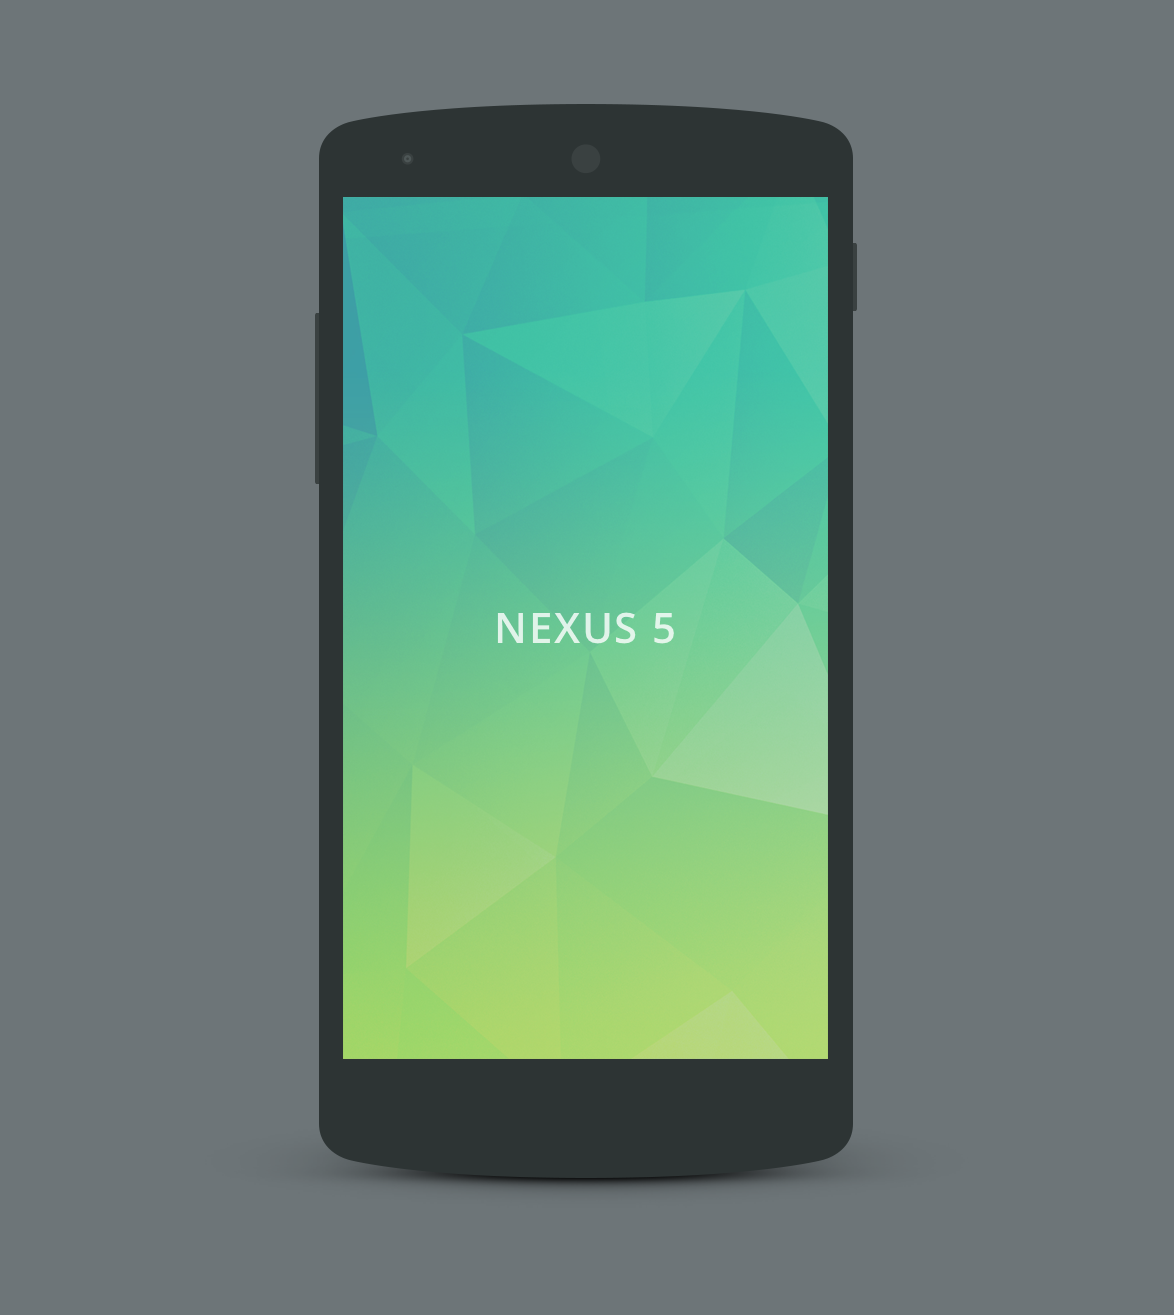 15 Free Mockup PSDs of iPhone and Nexus 5 | Design | Pinterest ...